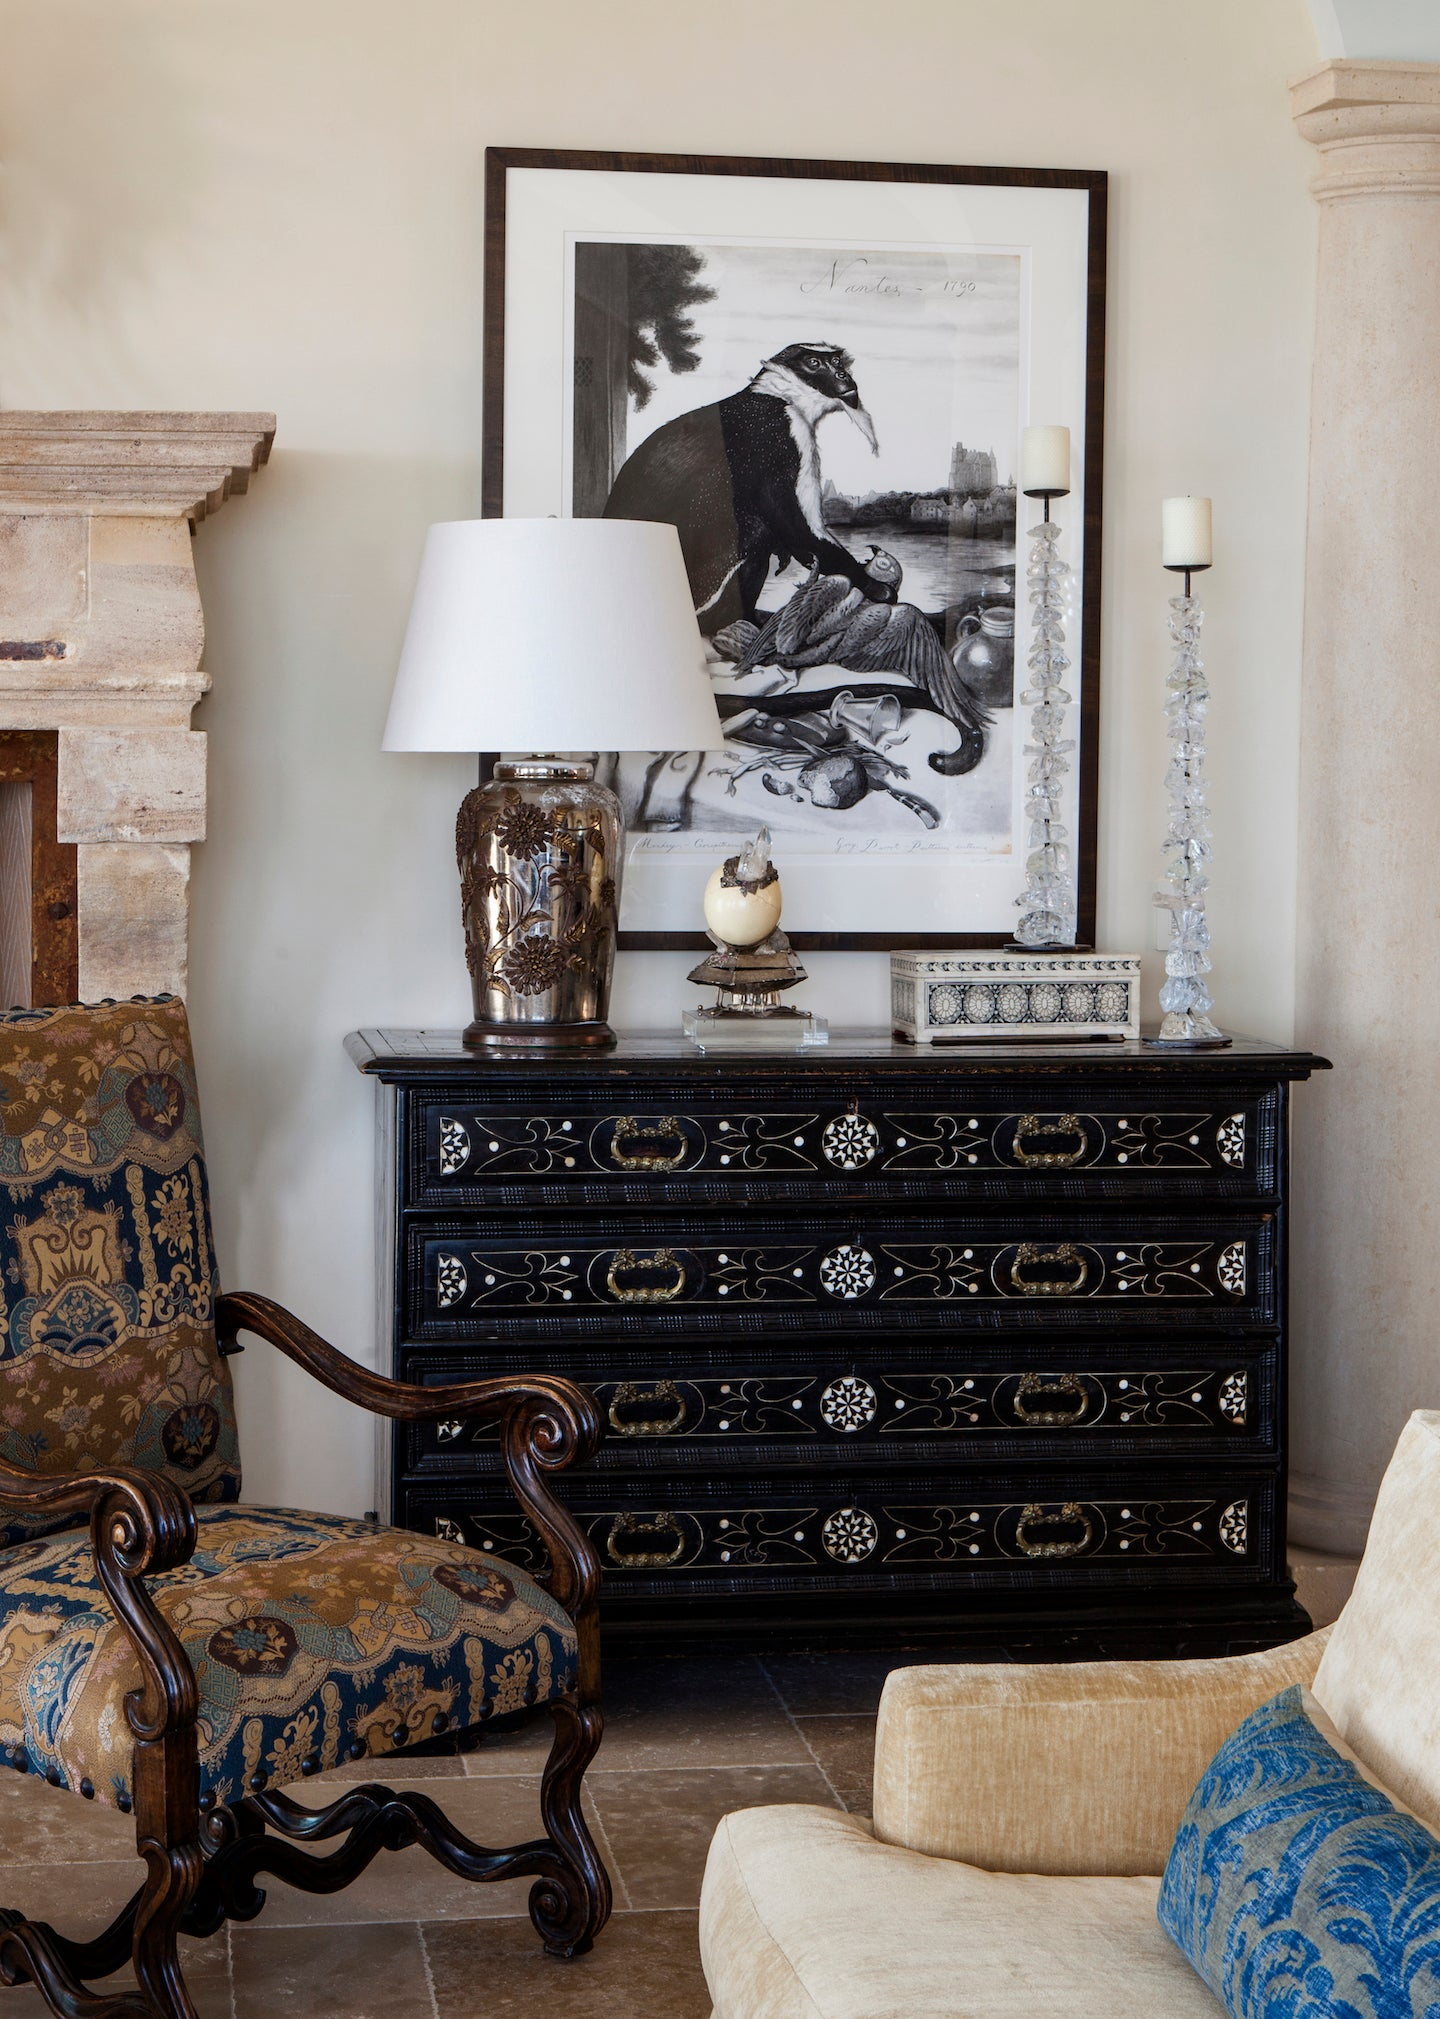 Nimmo Tuscan Living Room Vignette By Philip Nimmo Inc